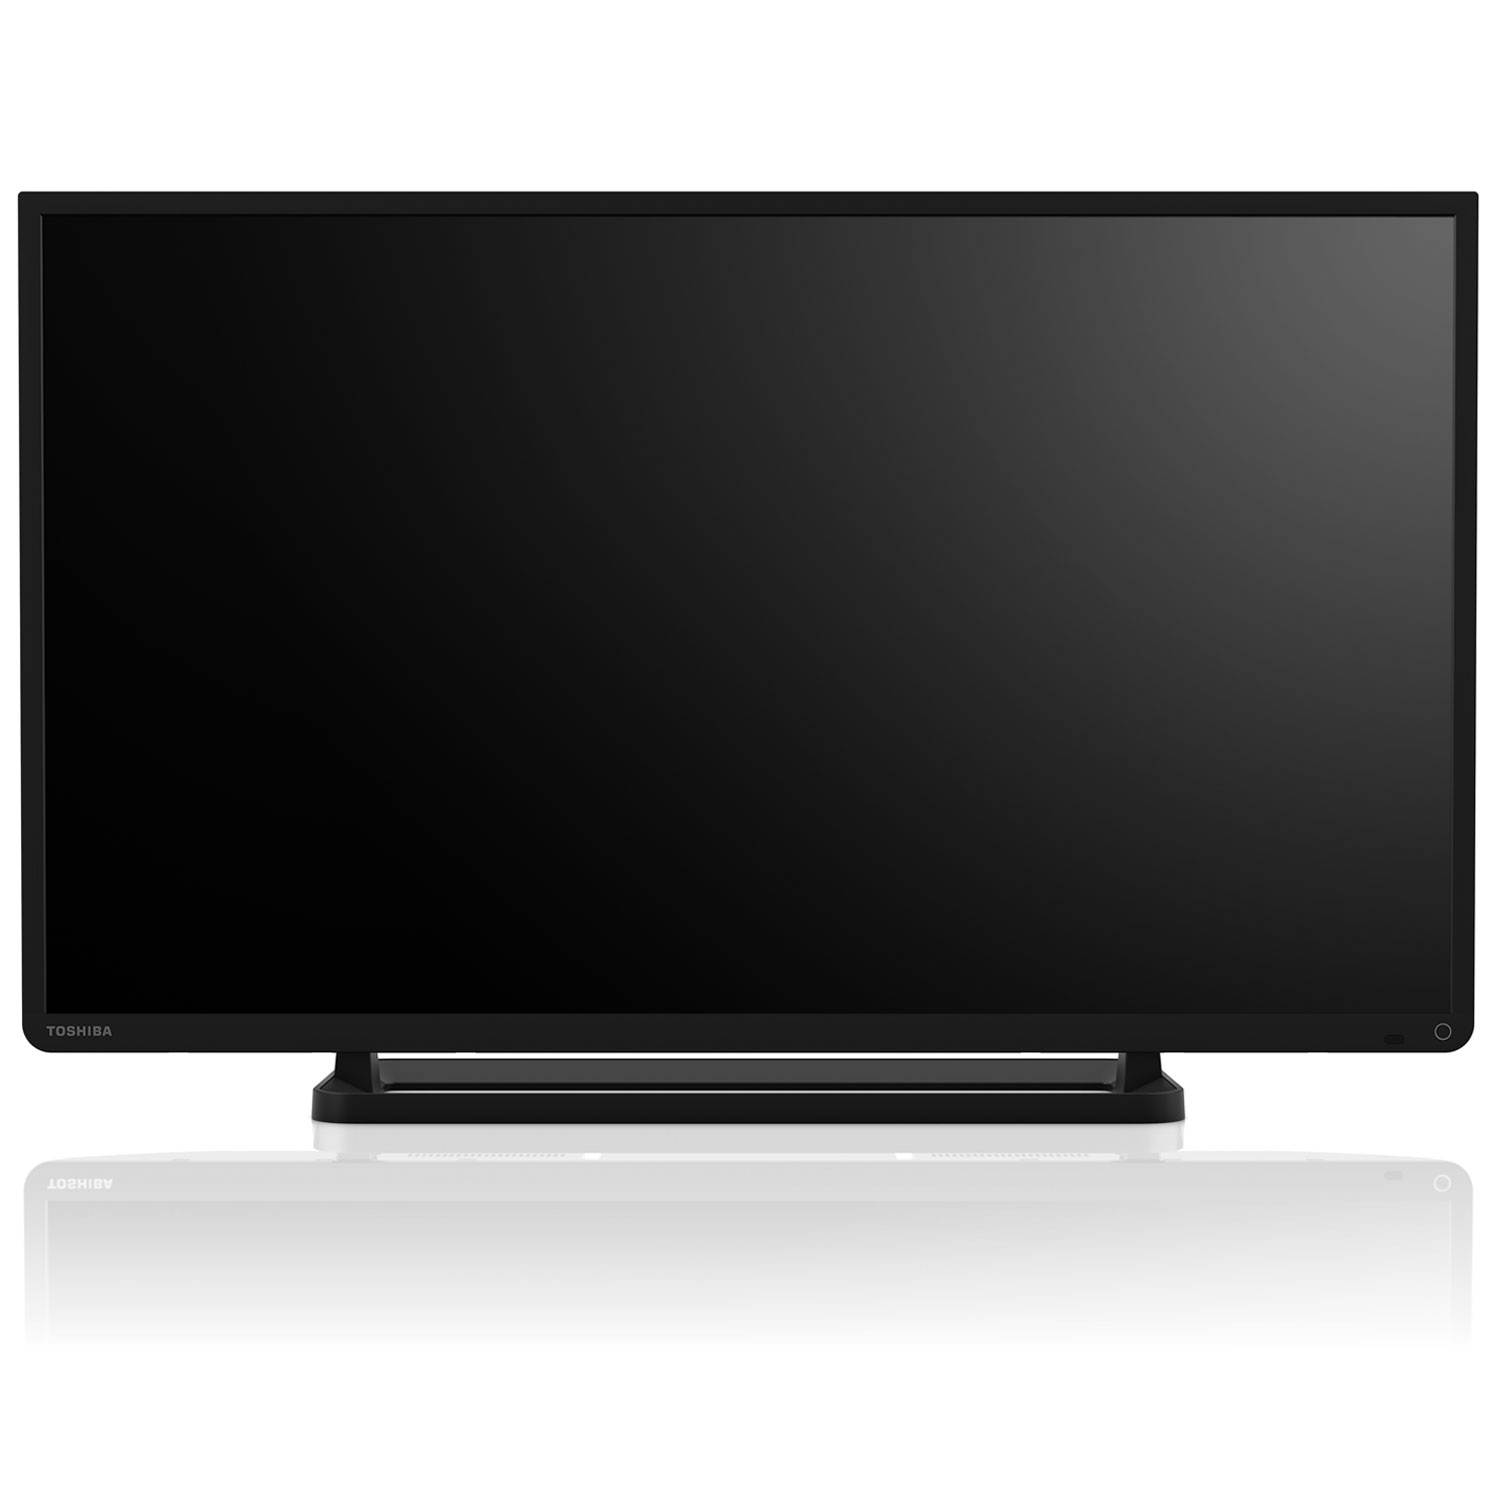 toshiba 32l2433dg tv toshiba sur ldlc. Black Bedroom Furniture Sets. Home Design Ideas